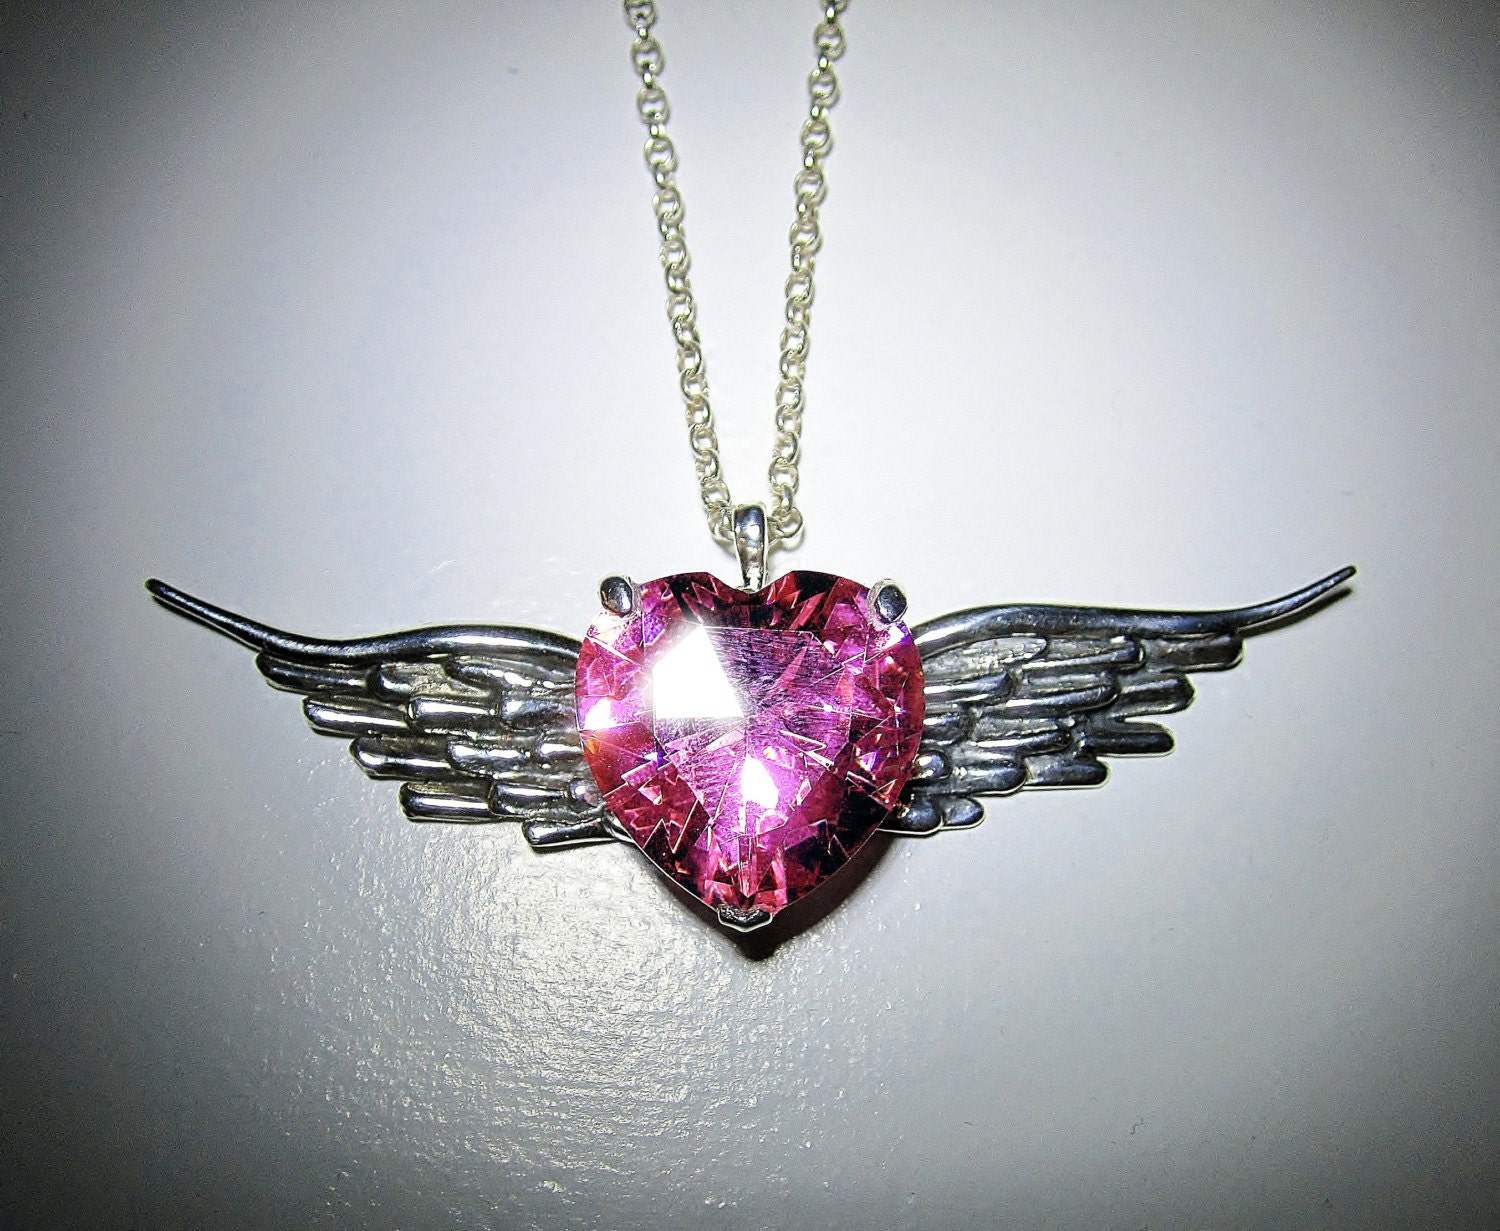 diamond lab baby store elegant w gold silver yellow chain winged finish pendant angel cute